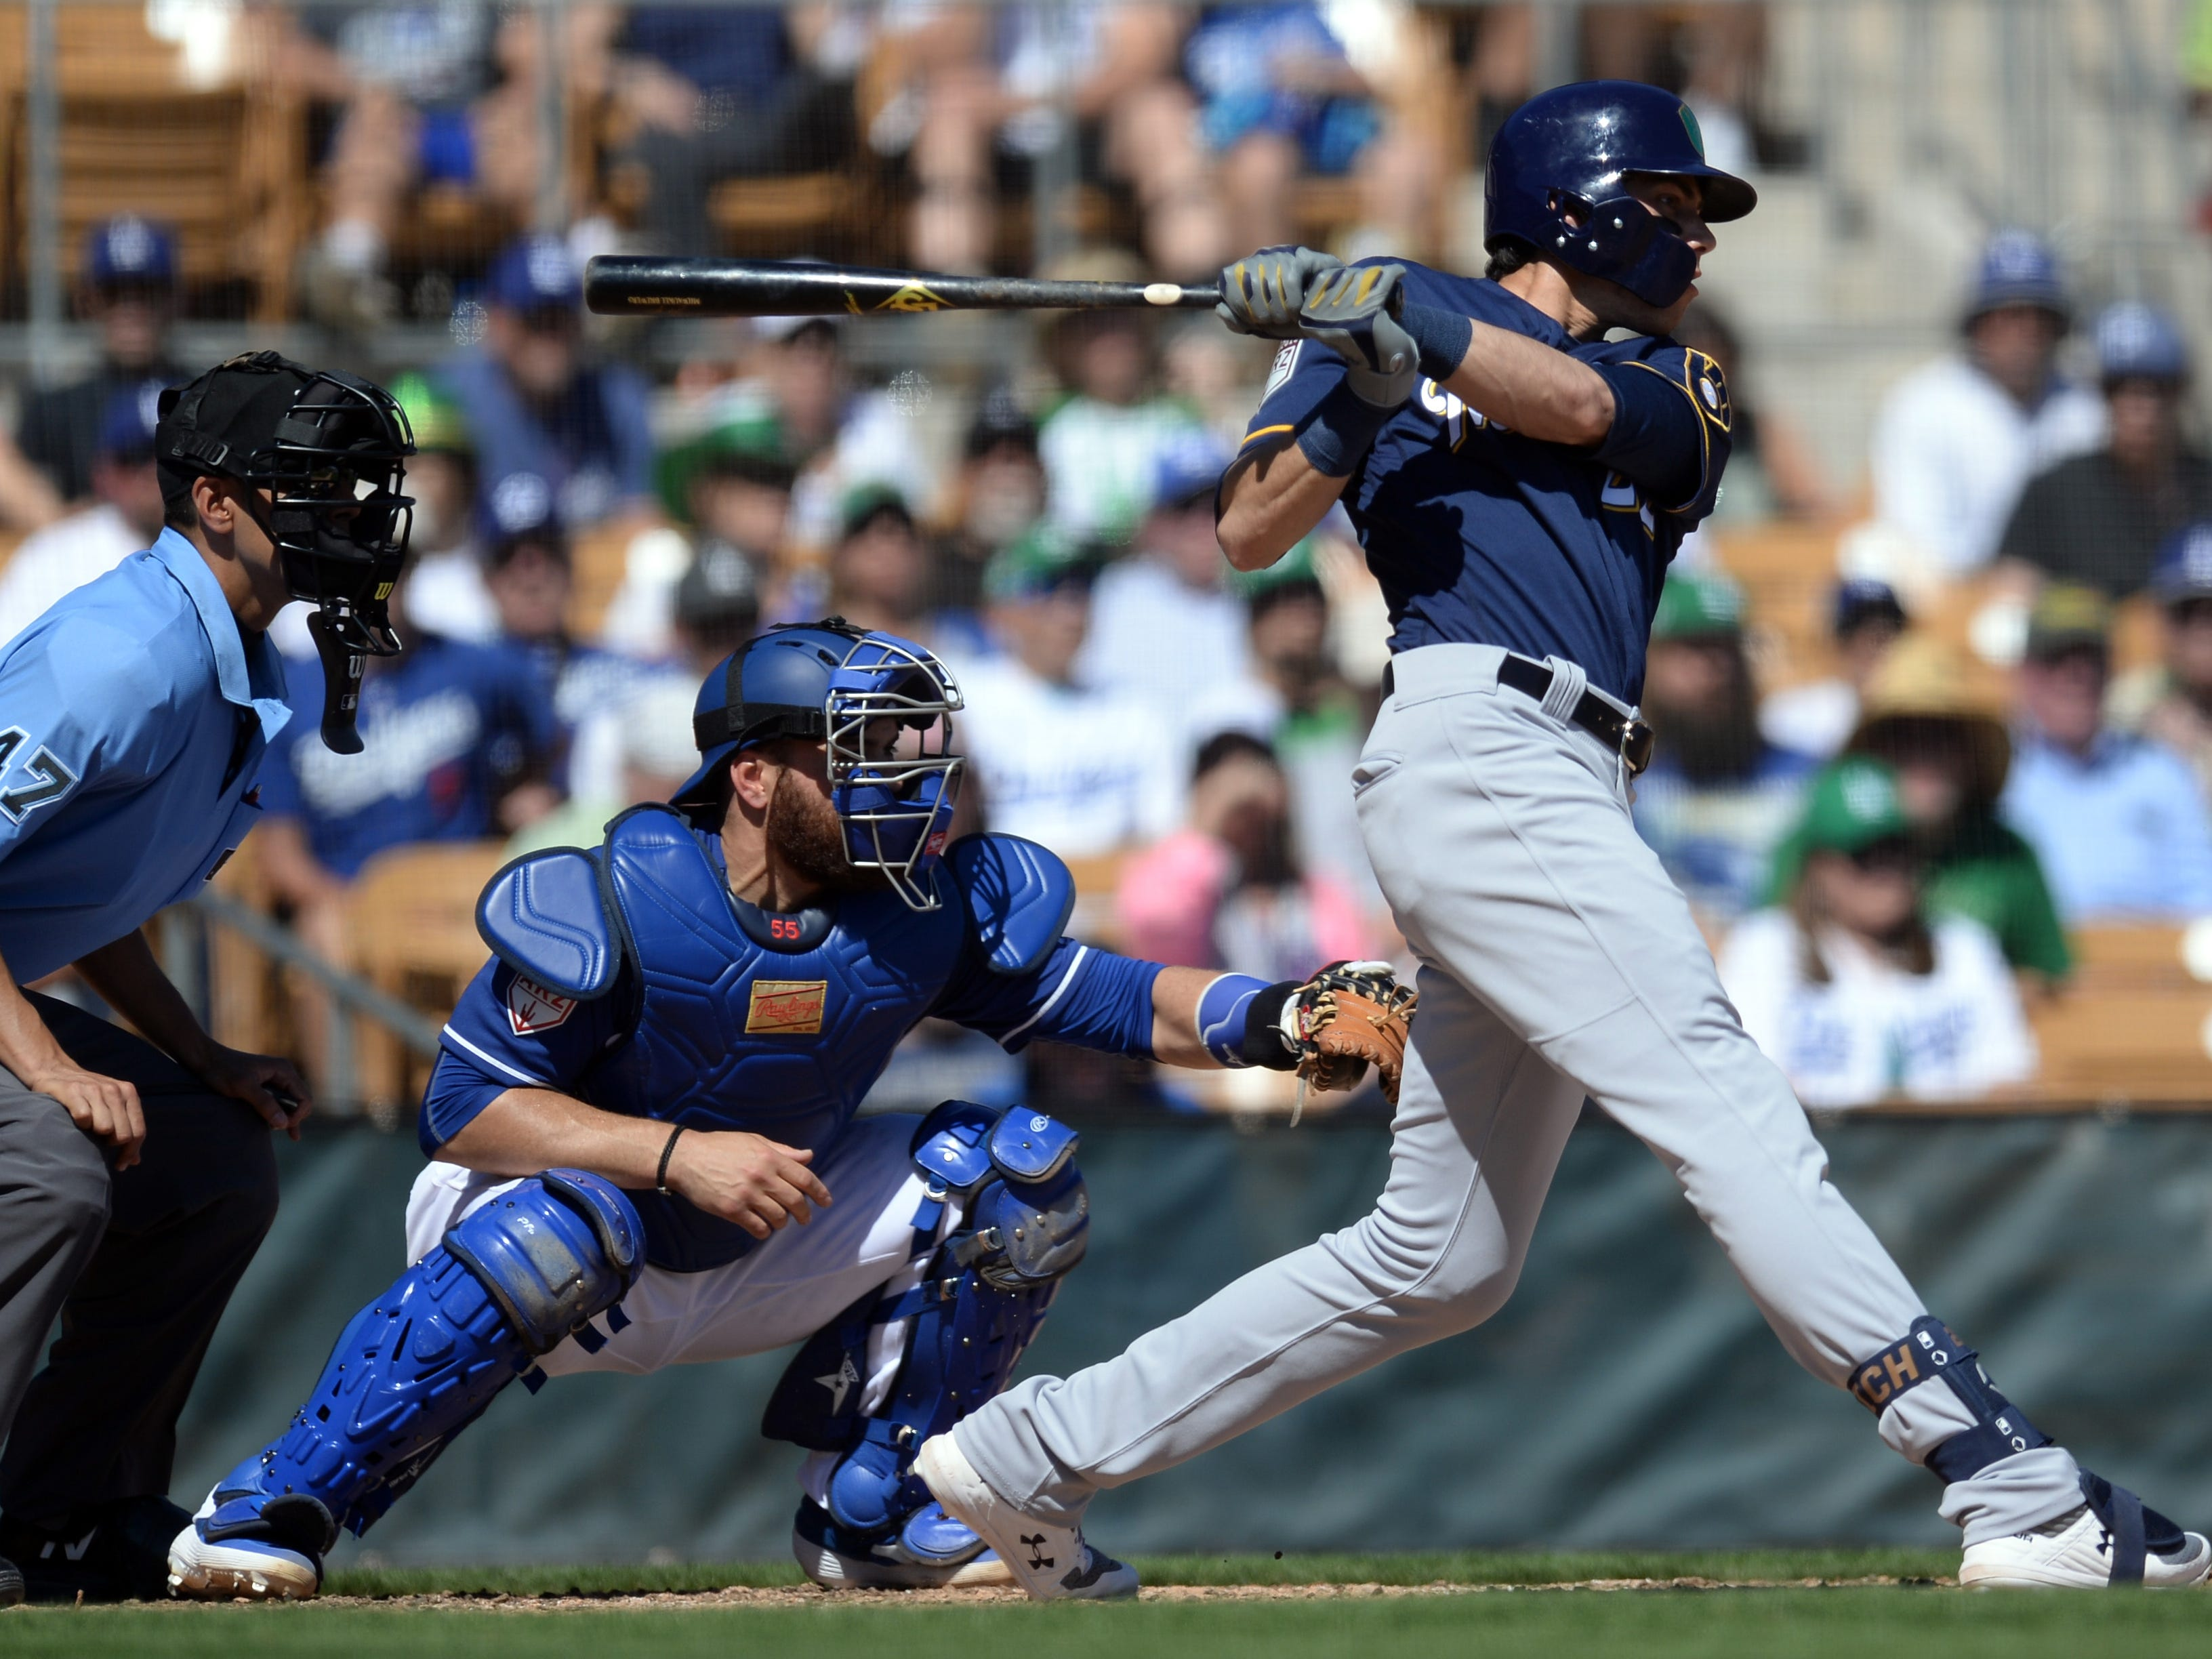 Christian Yelich of the Brewers cracks a single against the Dodgers during the third inning. Yelich, the reigning NL MVP, is hitting .500 this spring.